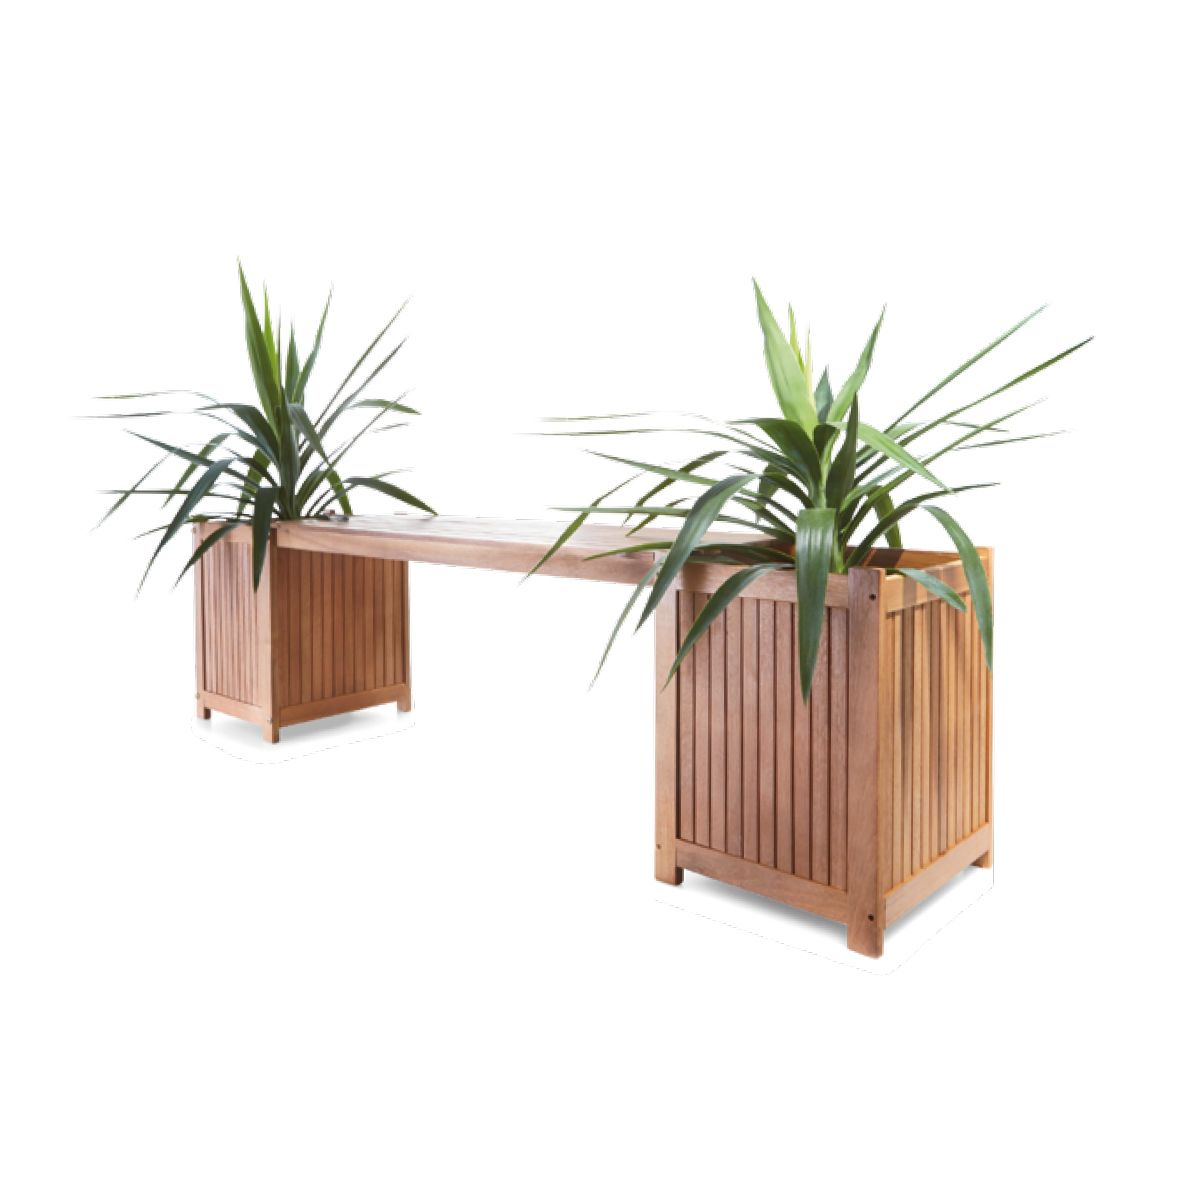 Cool Oasis Bench Seat With Planter Boxes Kmart Renew Vows 21 Machost Co Dining Chair Design Ideas Machostcouk